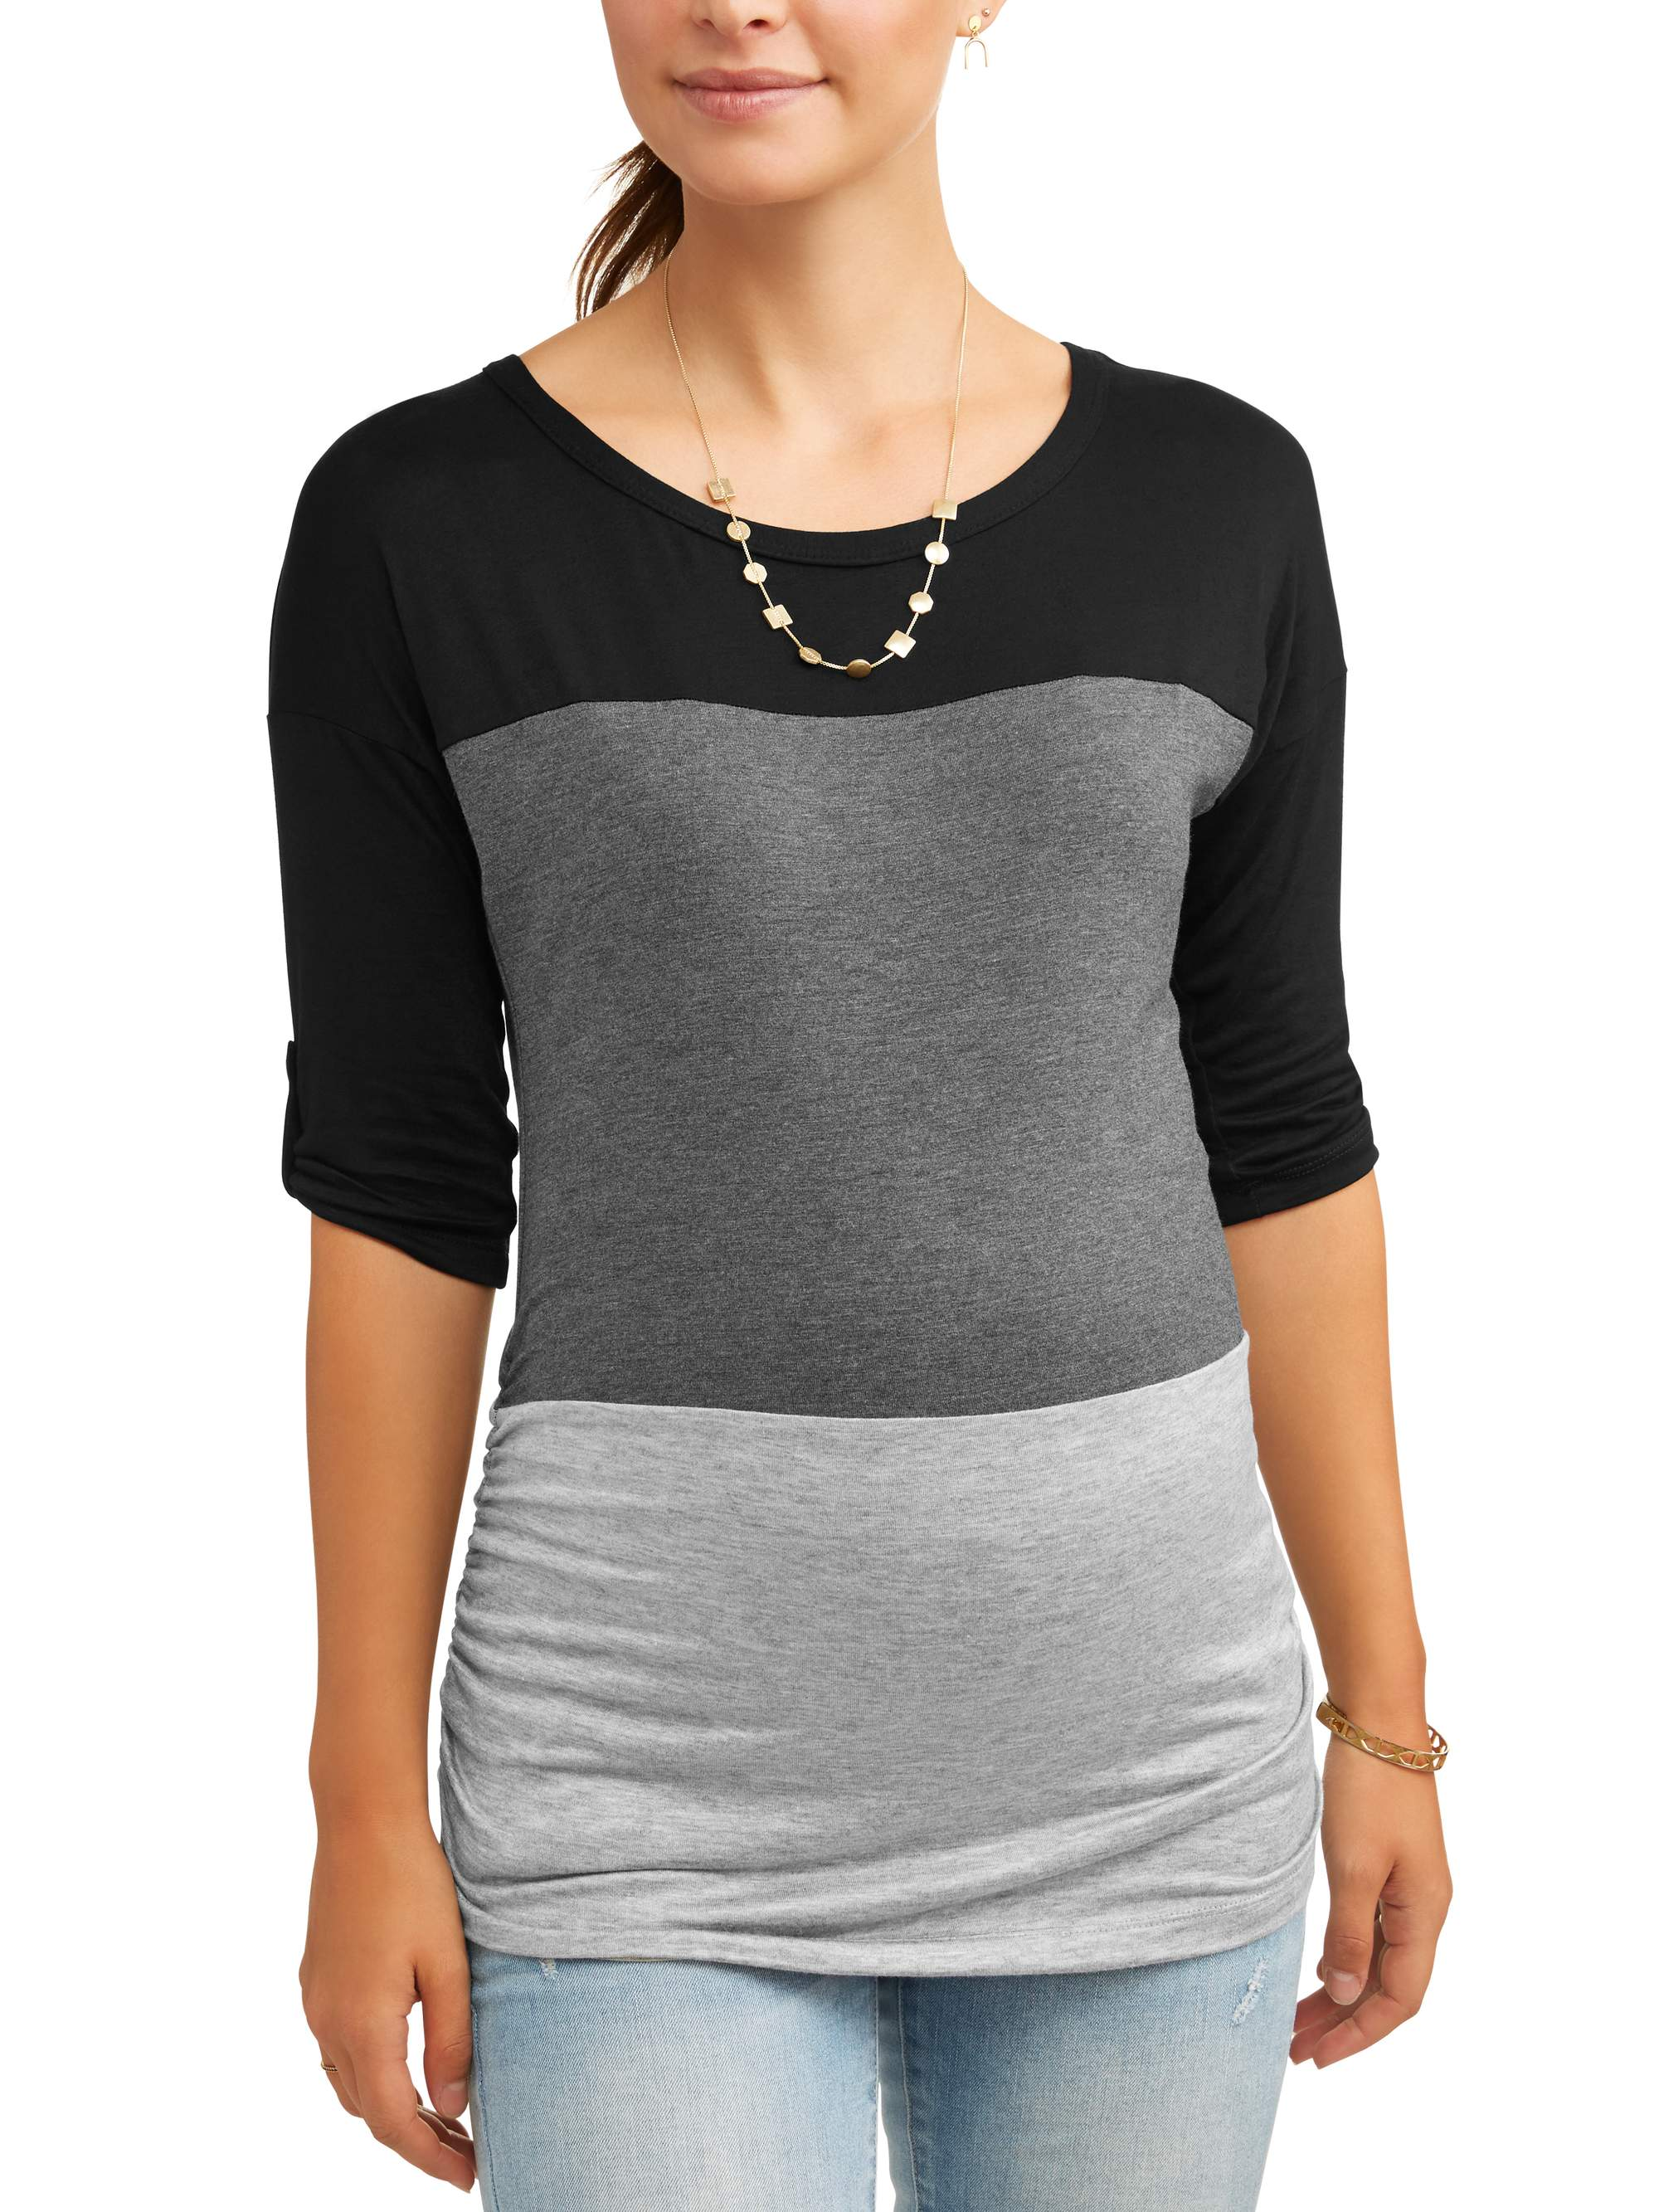 Maternity 3 4 Sleeve Color Block Top by Zoomers